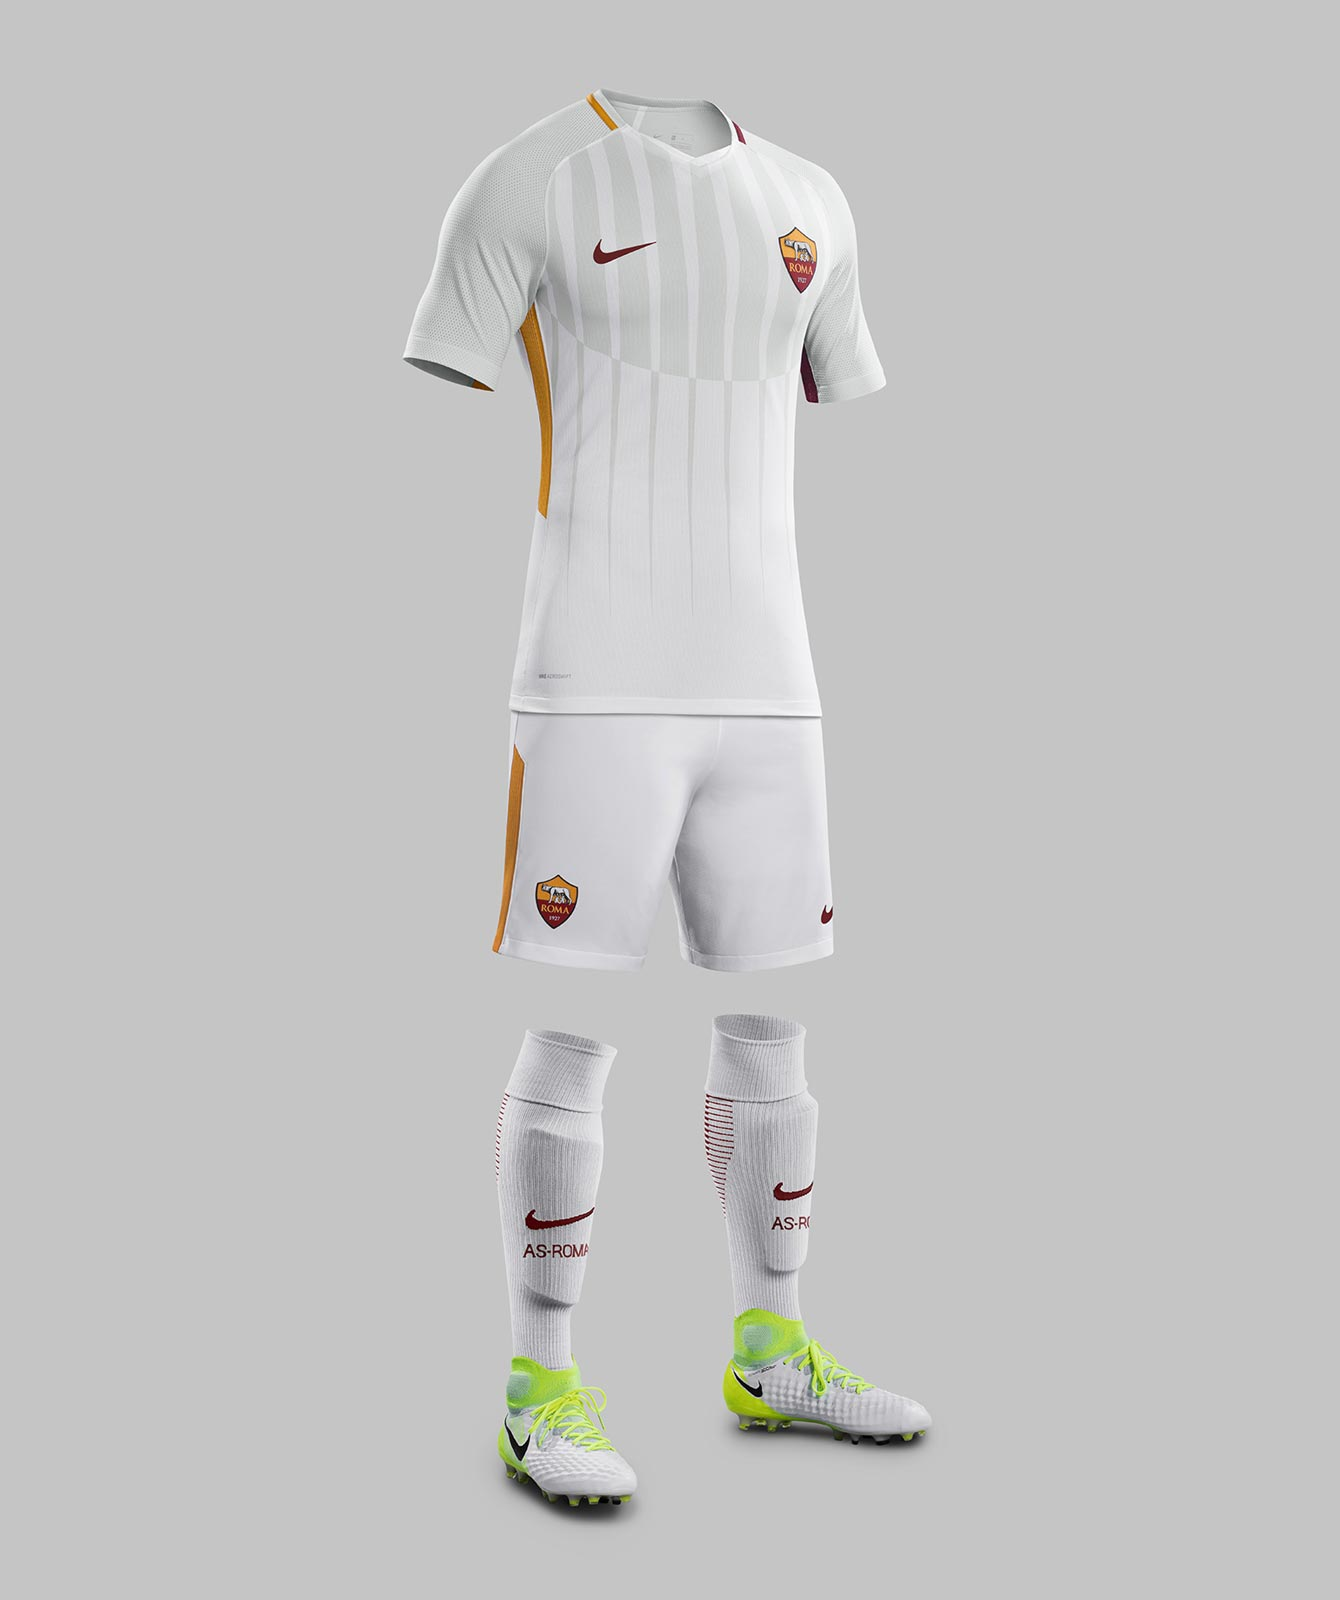 Maillot Juventus Exterieur As Roma 17-18 Away Kit Revealed - Footy Headlines